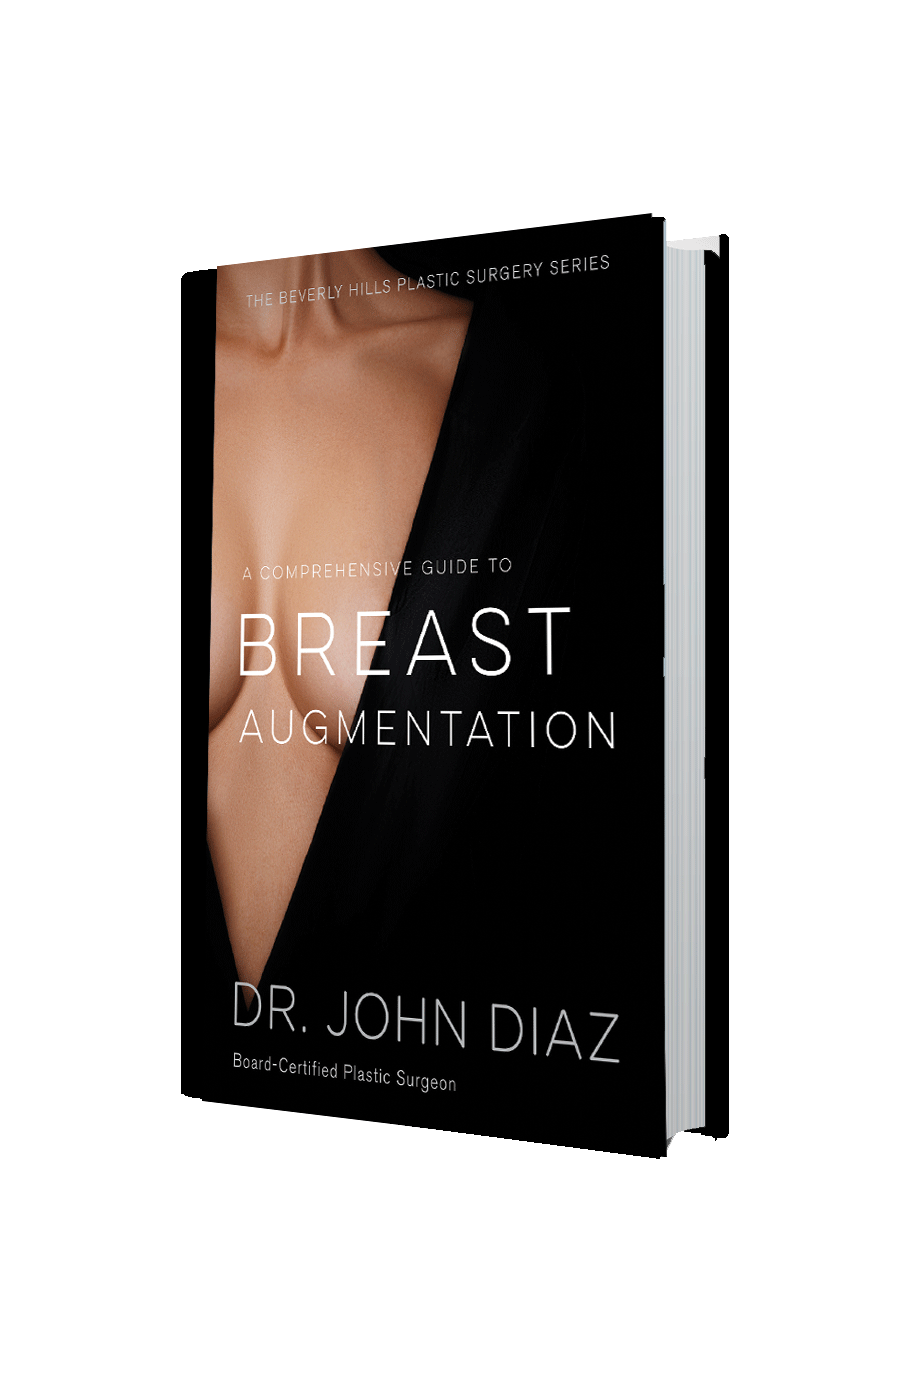 Top Beverly Hills Plastic Surgeon Publishes Book